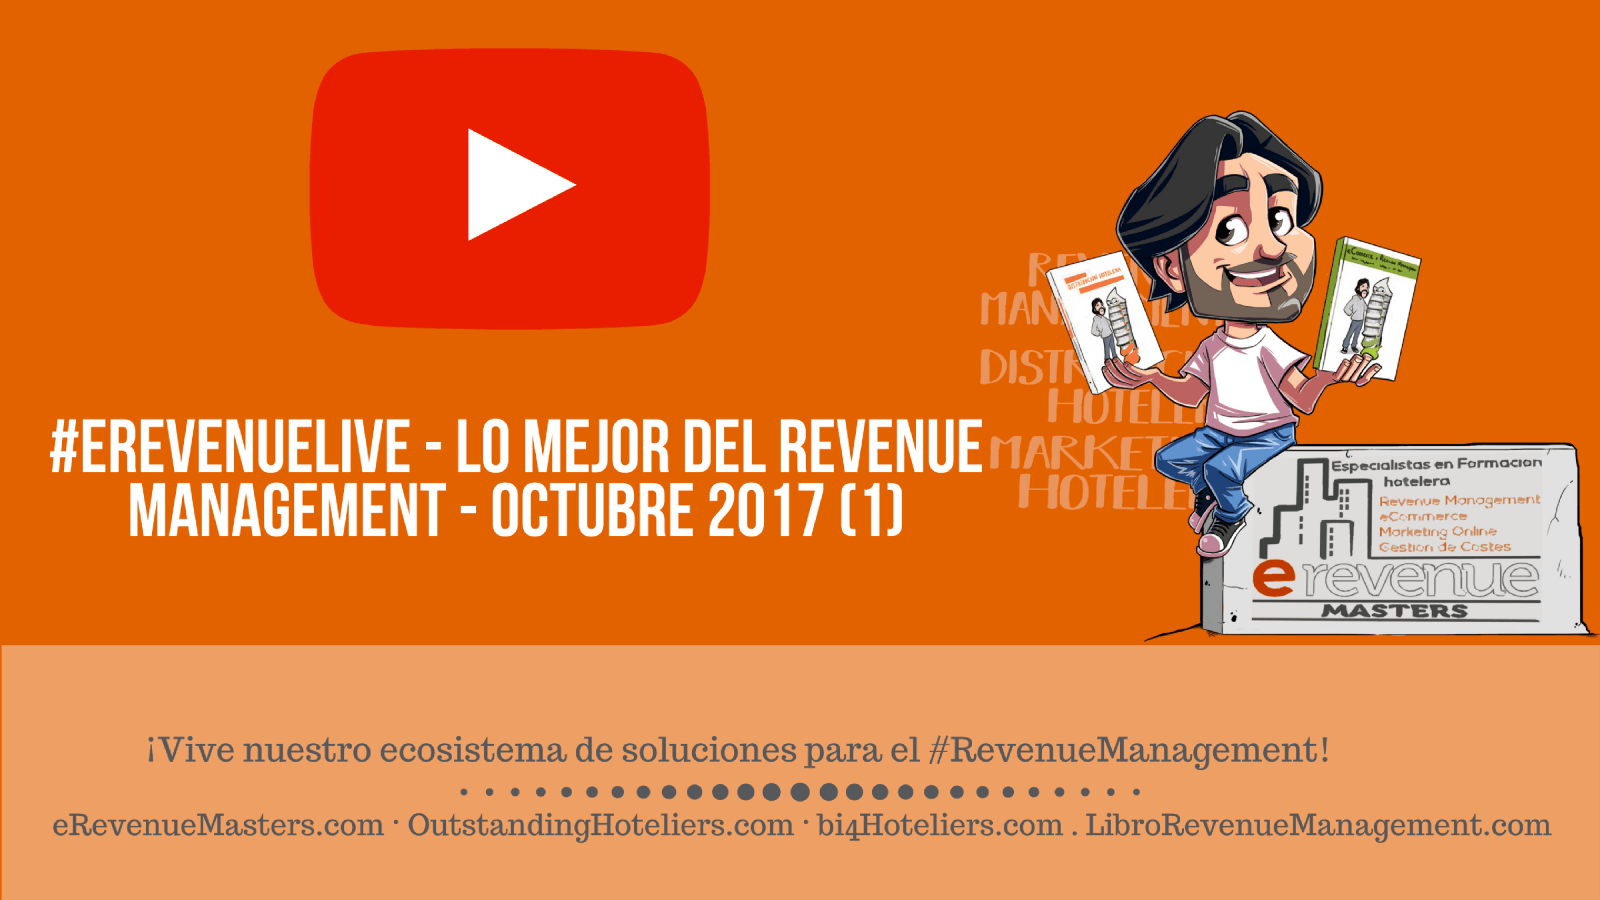 (video & Podcast) #eRevenueLive - Lo mejor del Revenue Management - Octubre 2017 (1)